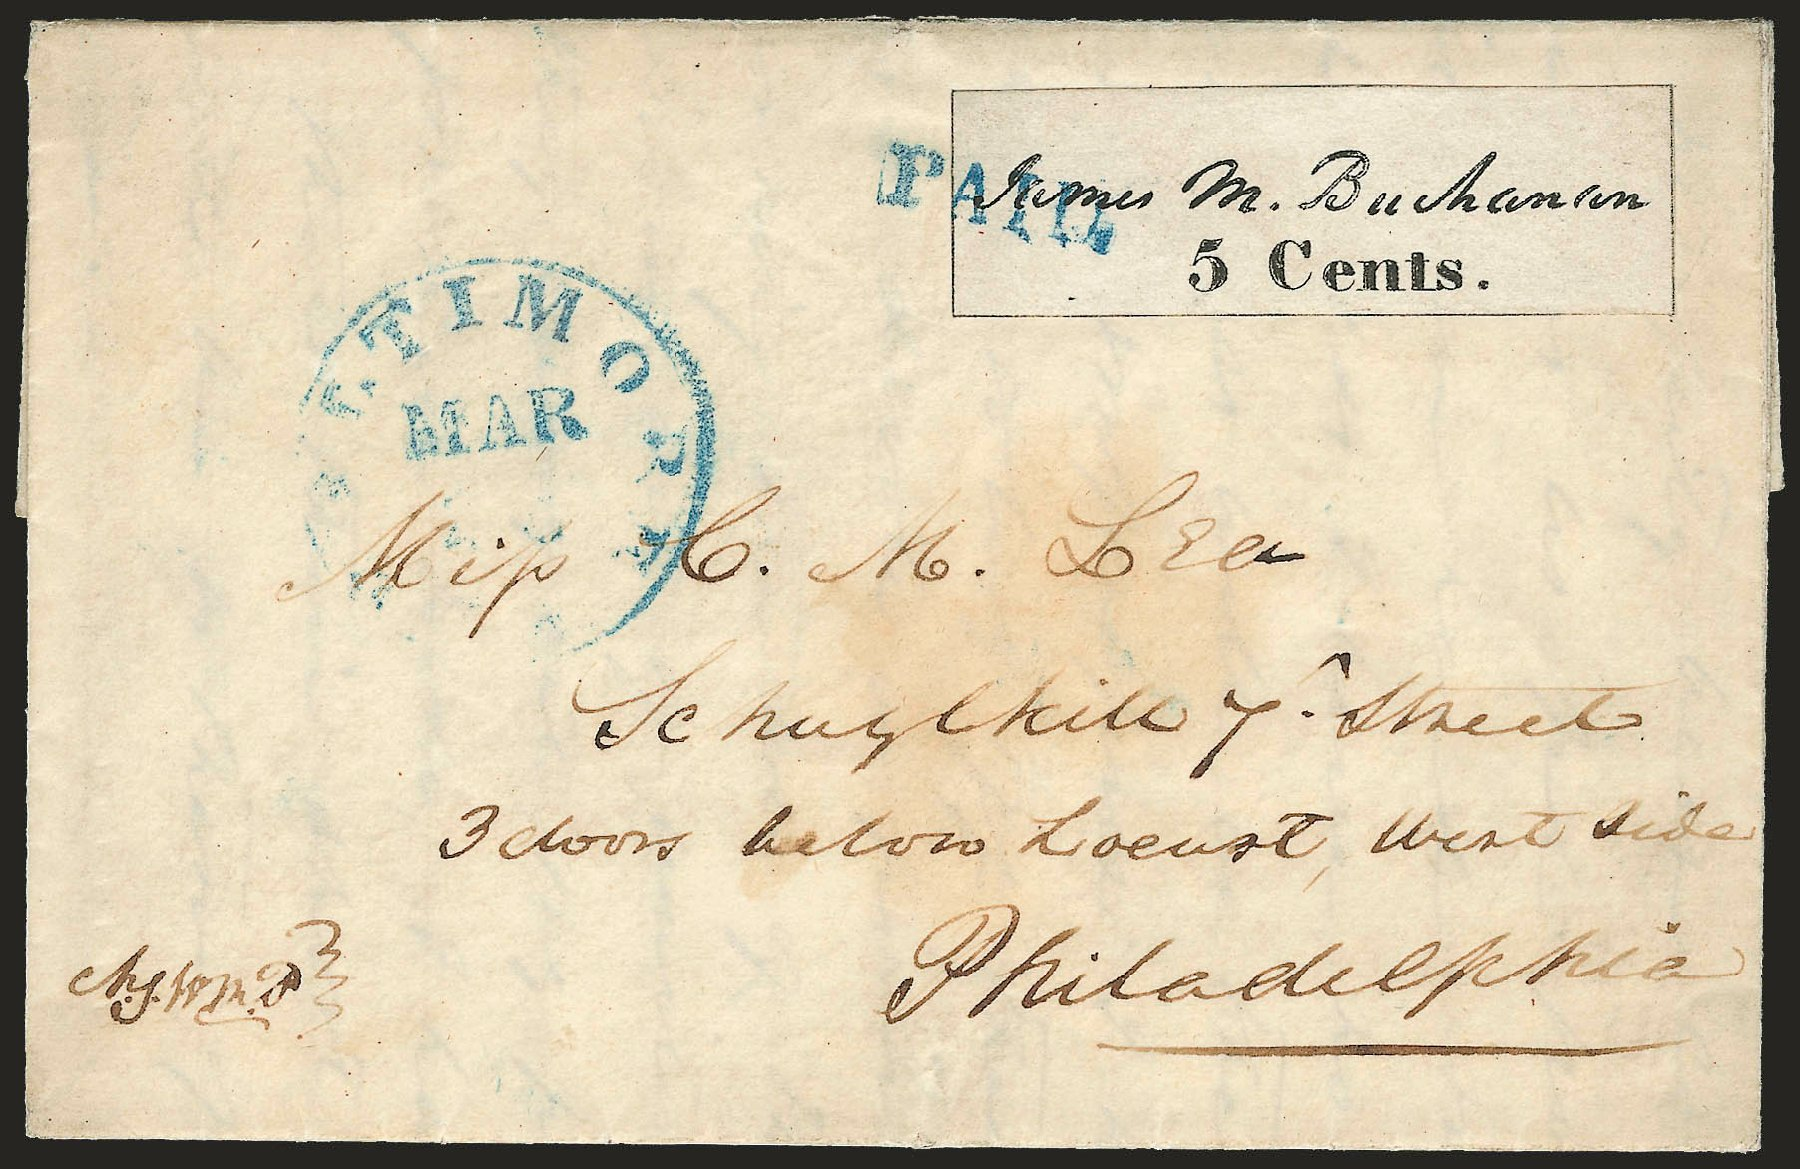 Prices of US Stamps Scott 3X1 - 5c 1845 Baltimore Postmasters Provisional. Robert Siegel Auction Galleries, Apr 2009, Sale 972, Lot 3001